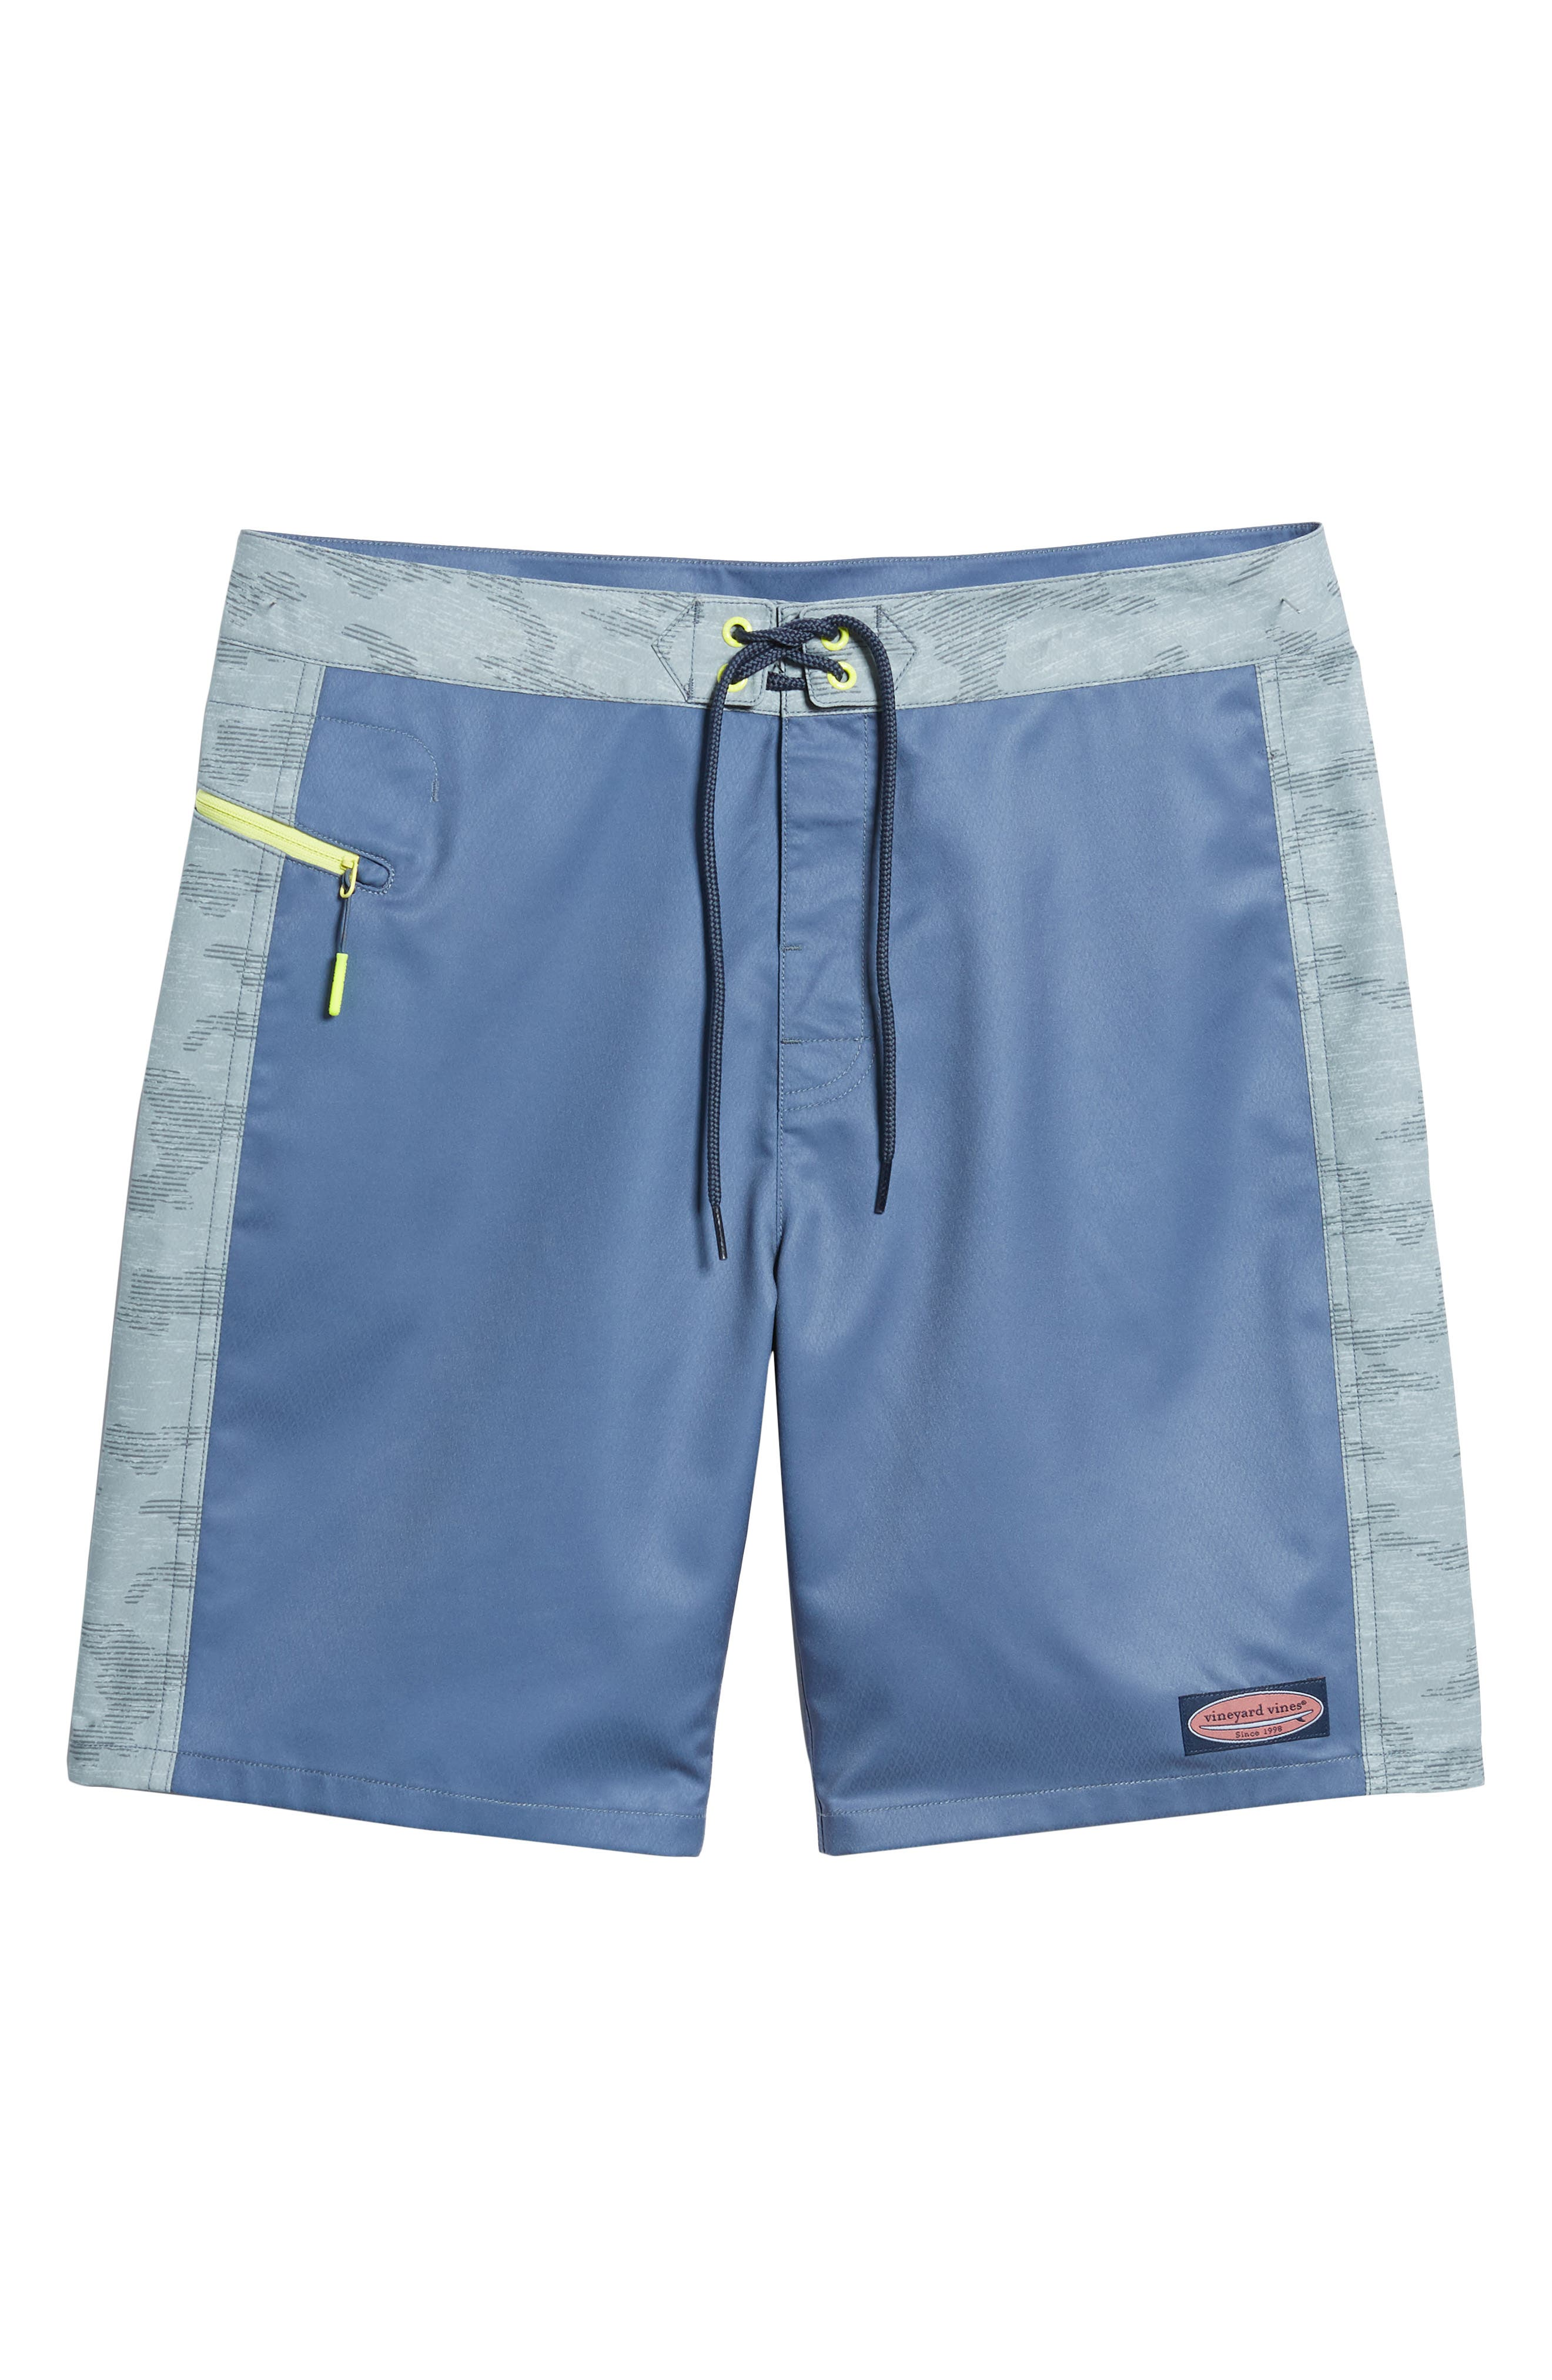 Camo Board Shorts,                             Alternate thumbnail 6, color,                             Monument Grey